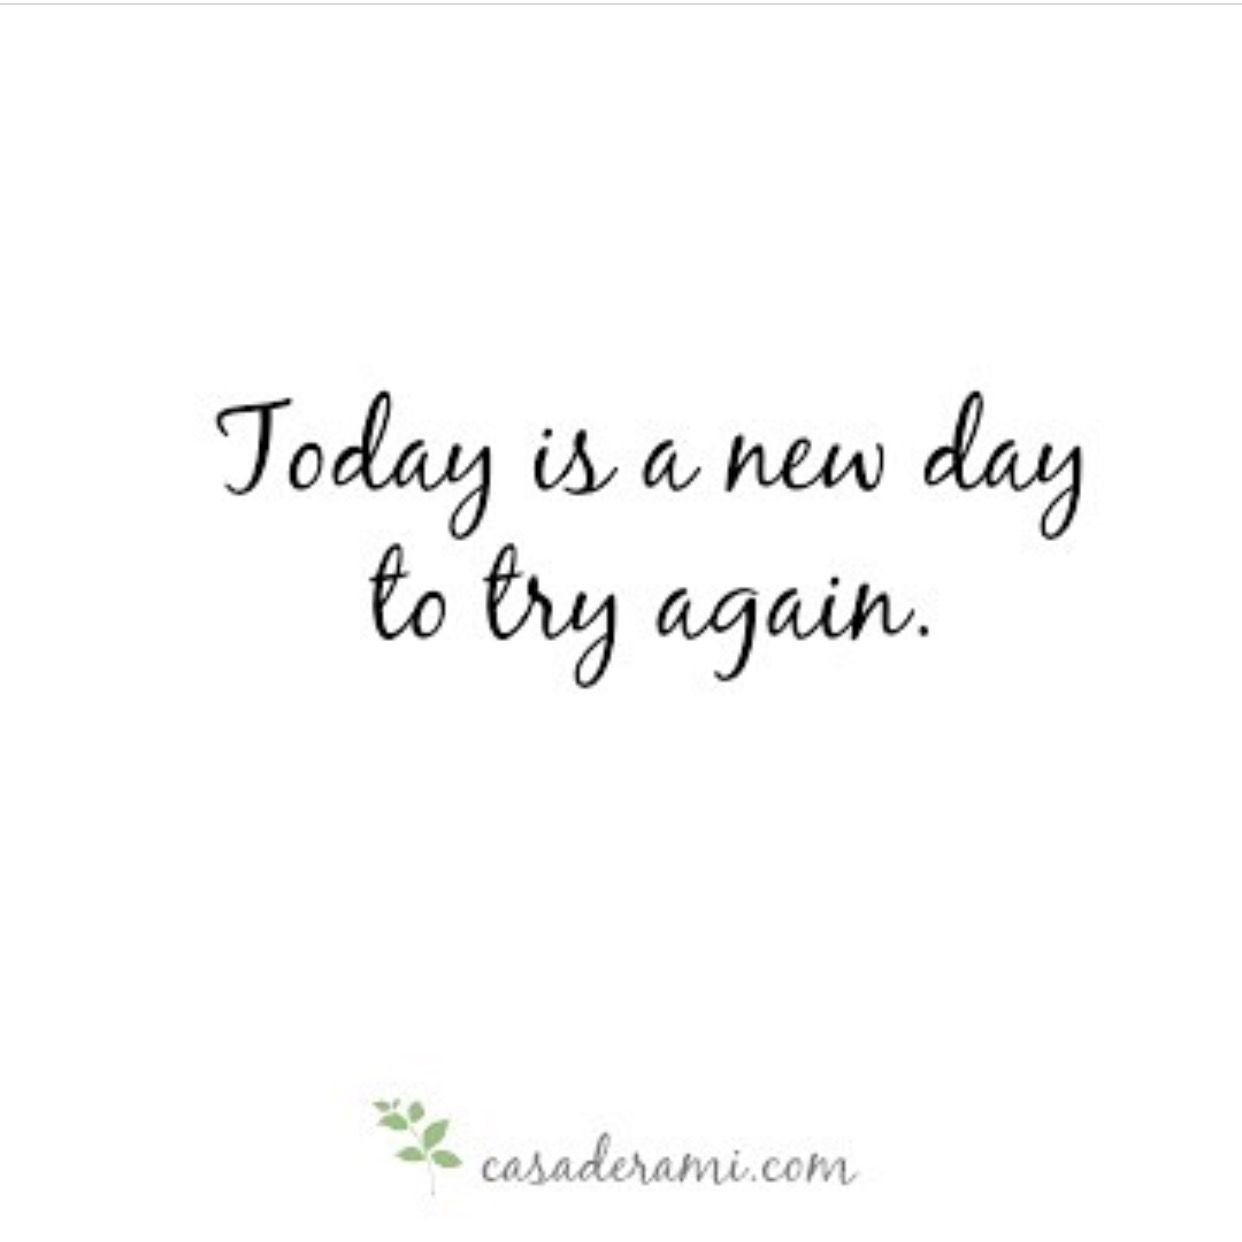 Today Is A New Day To Try Again Www Casaderami Com Barbie Quotes Today Is A New Day Motivational Quotes